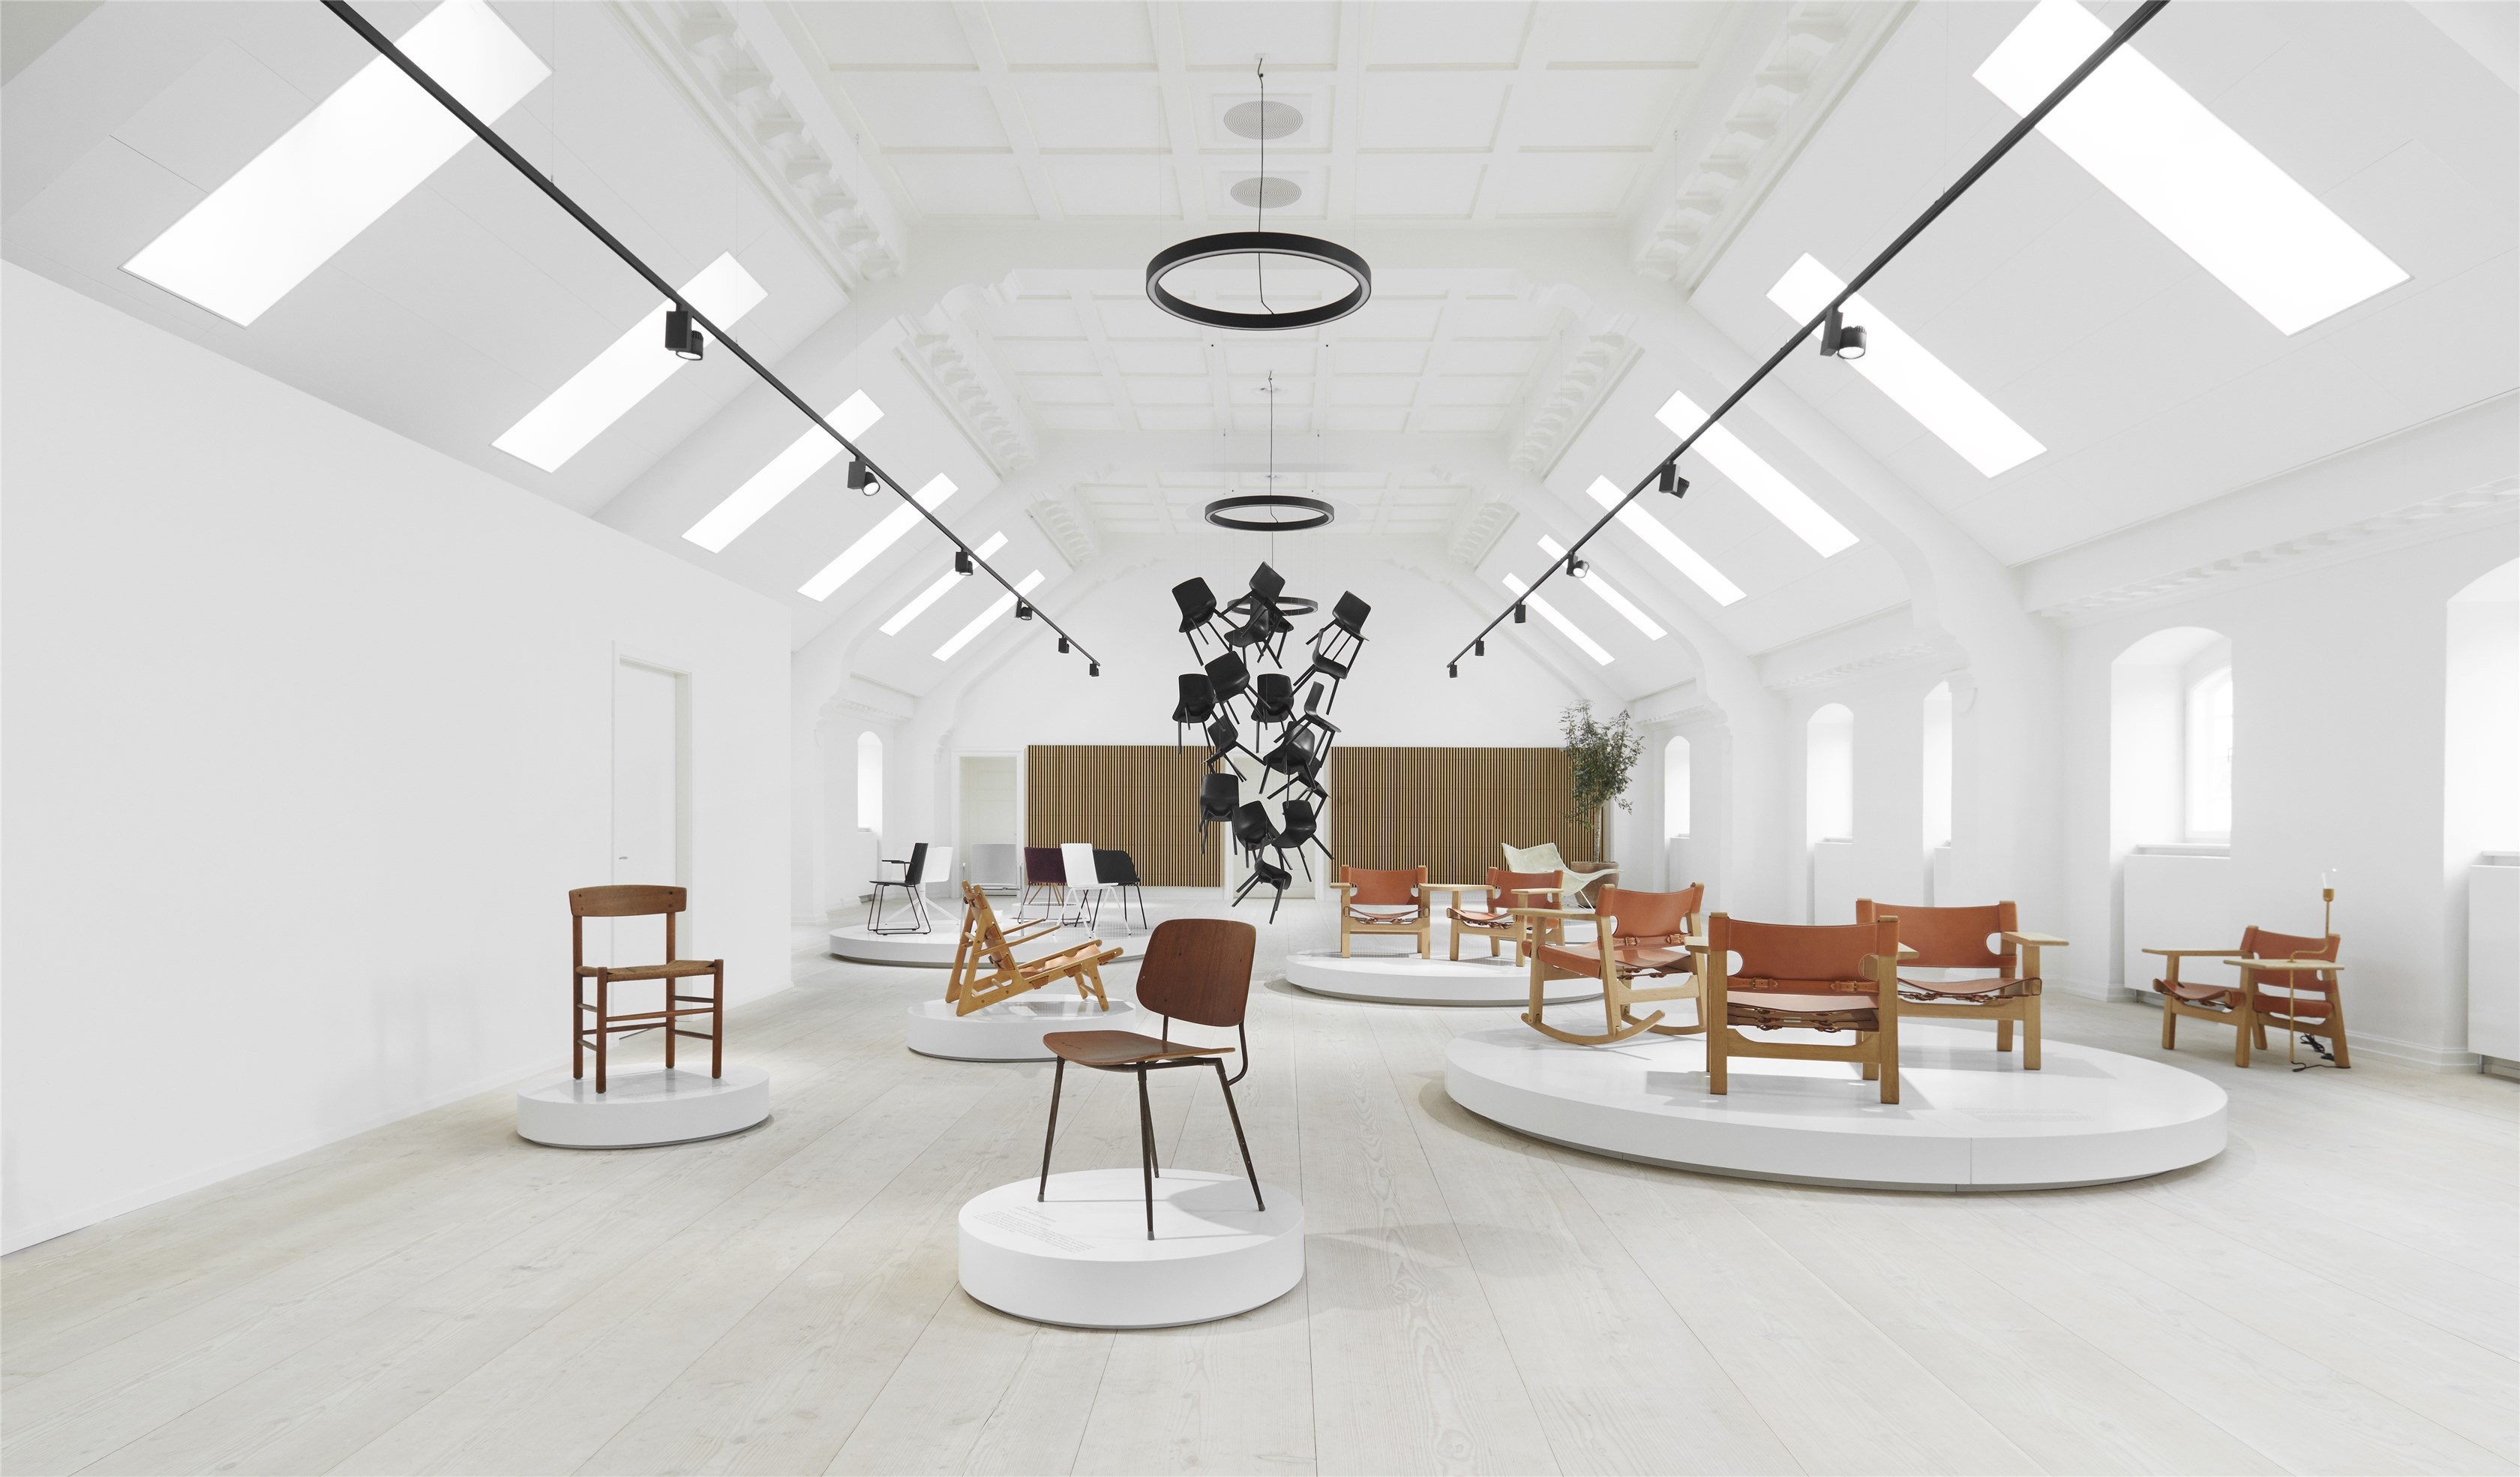 Fredericia's new rooftop showroom in Copenhagen - light spaces - minimal design - mid-century furniture design - loft-style living